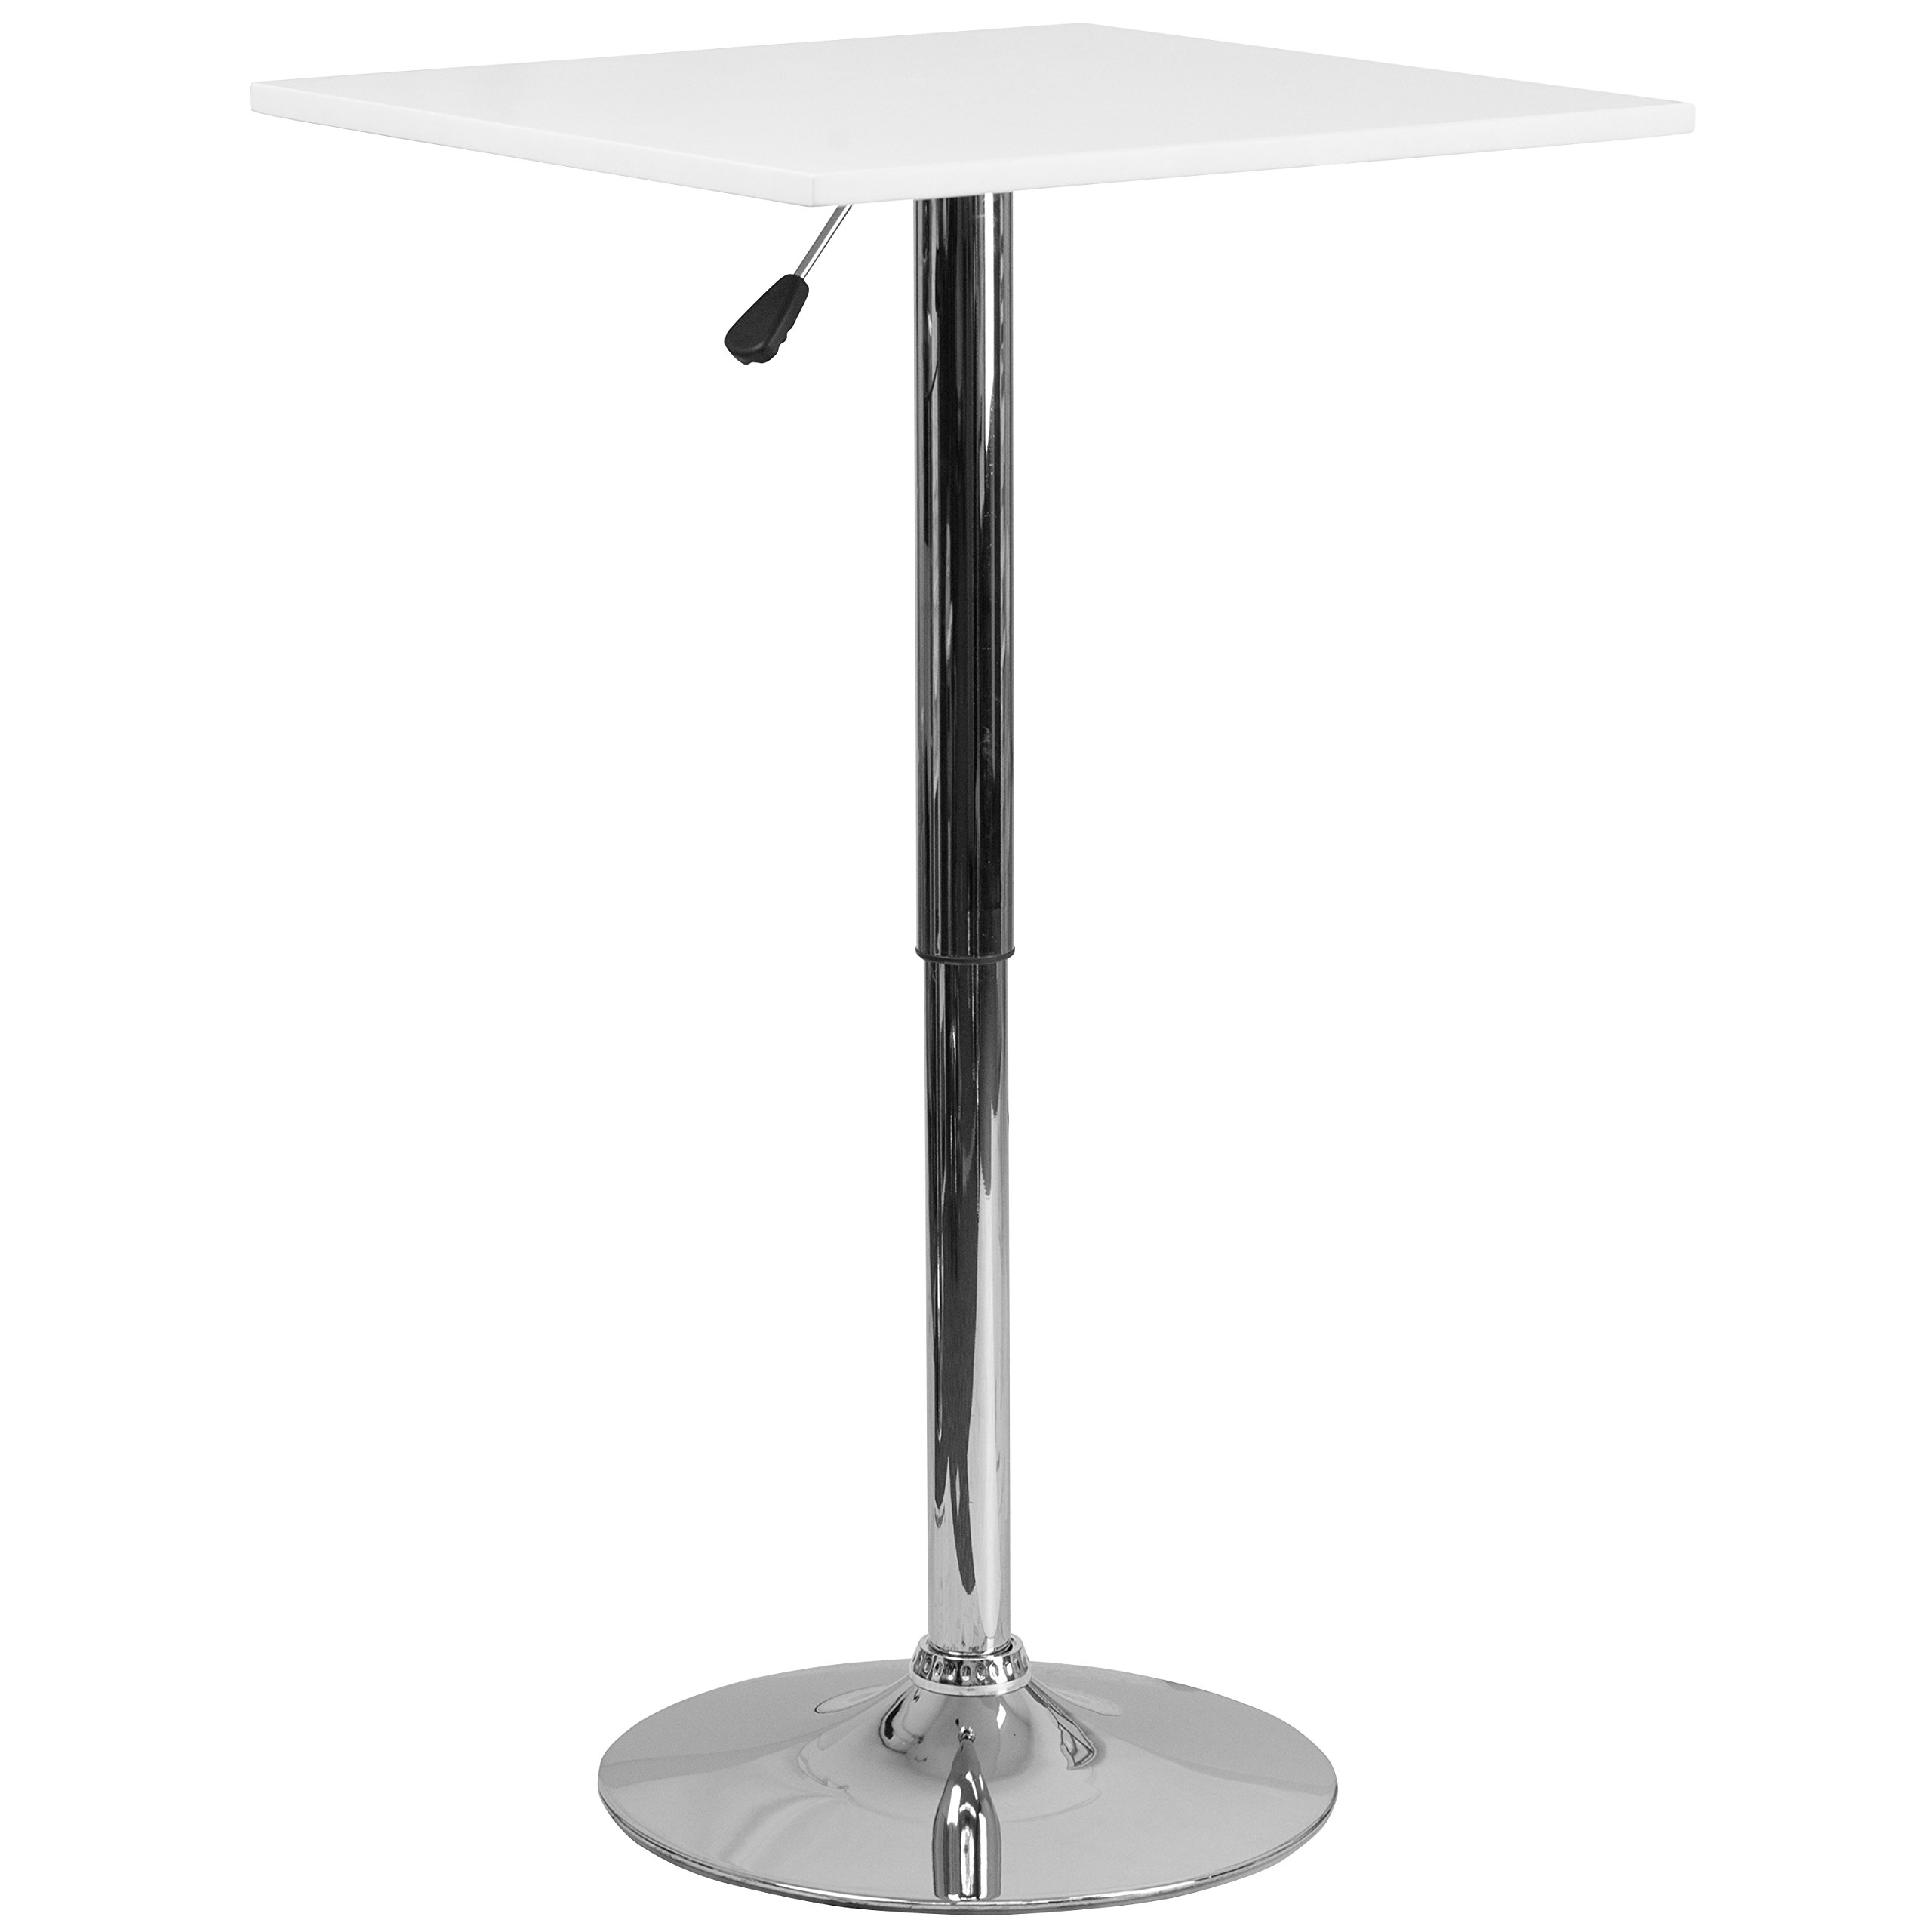 Flash Furniture 23.75'' Square Adjustable Height White Wood Table (Adjustable Range 33'' - 40.5'') by Flash Furniture